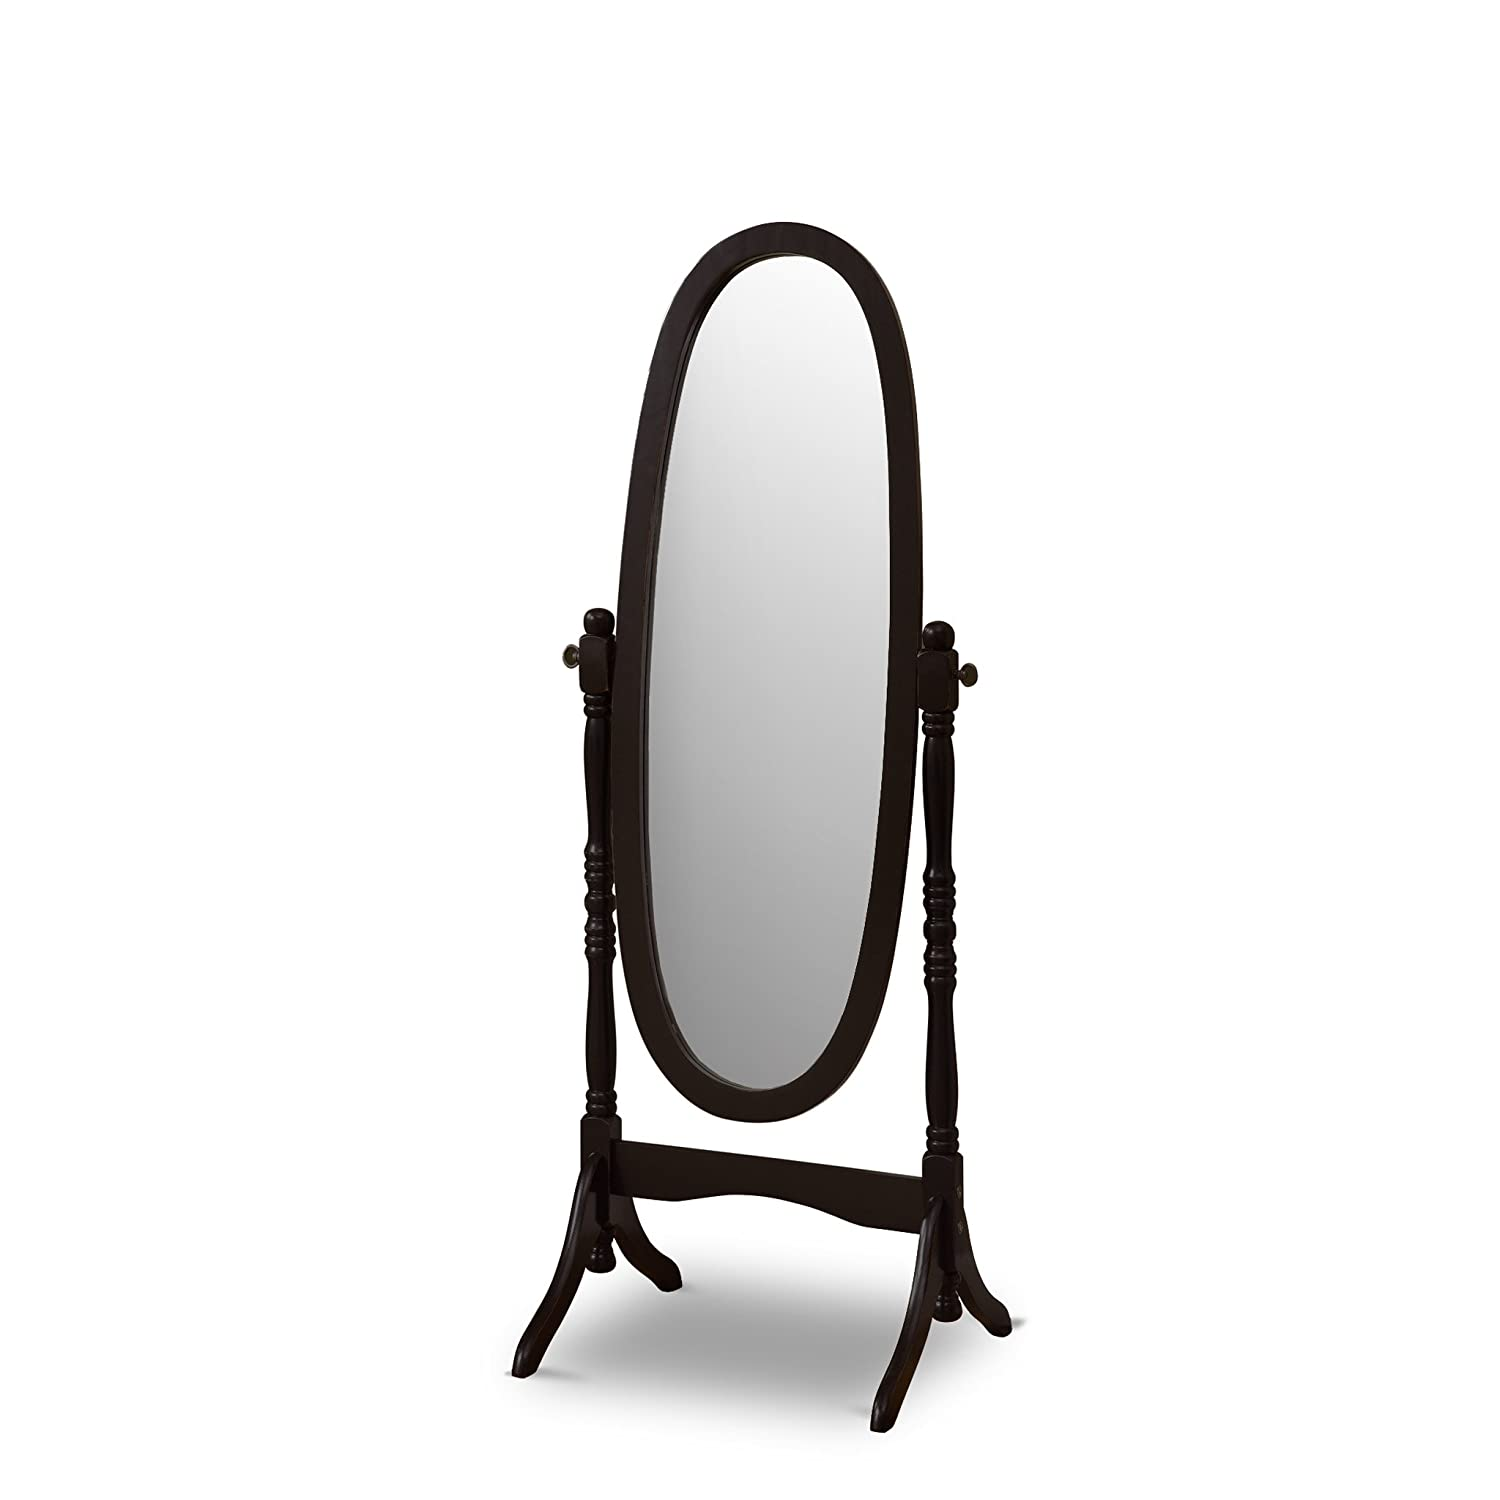 Poundex Victoria Floor Mirror Black POUNDEX ASSOCIATES CORP F4034BK